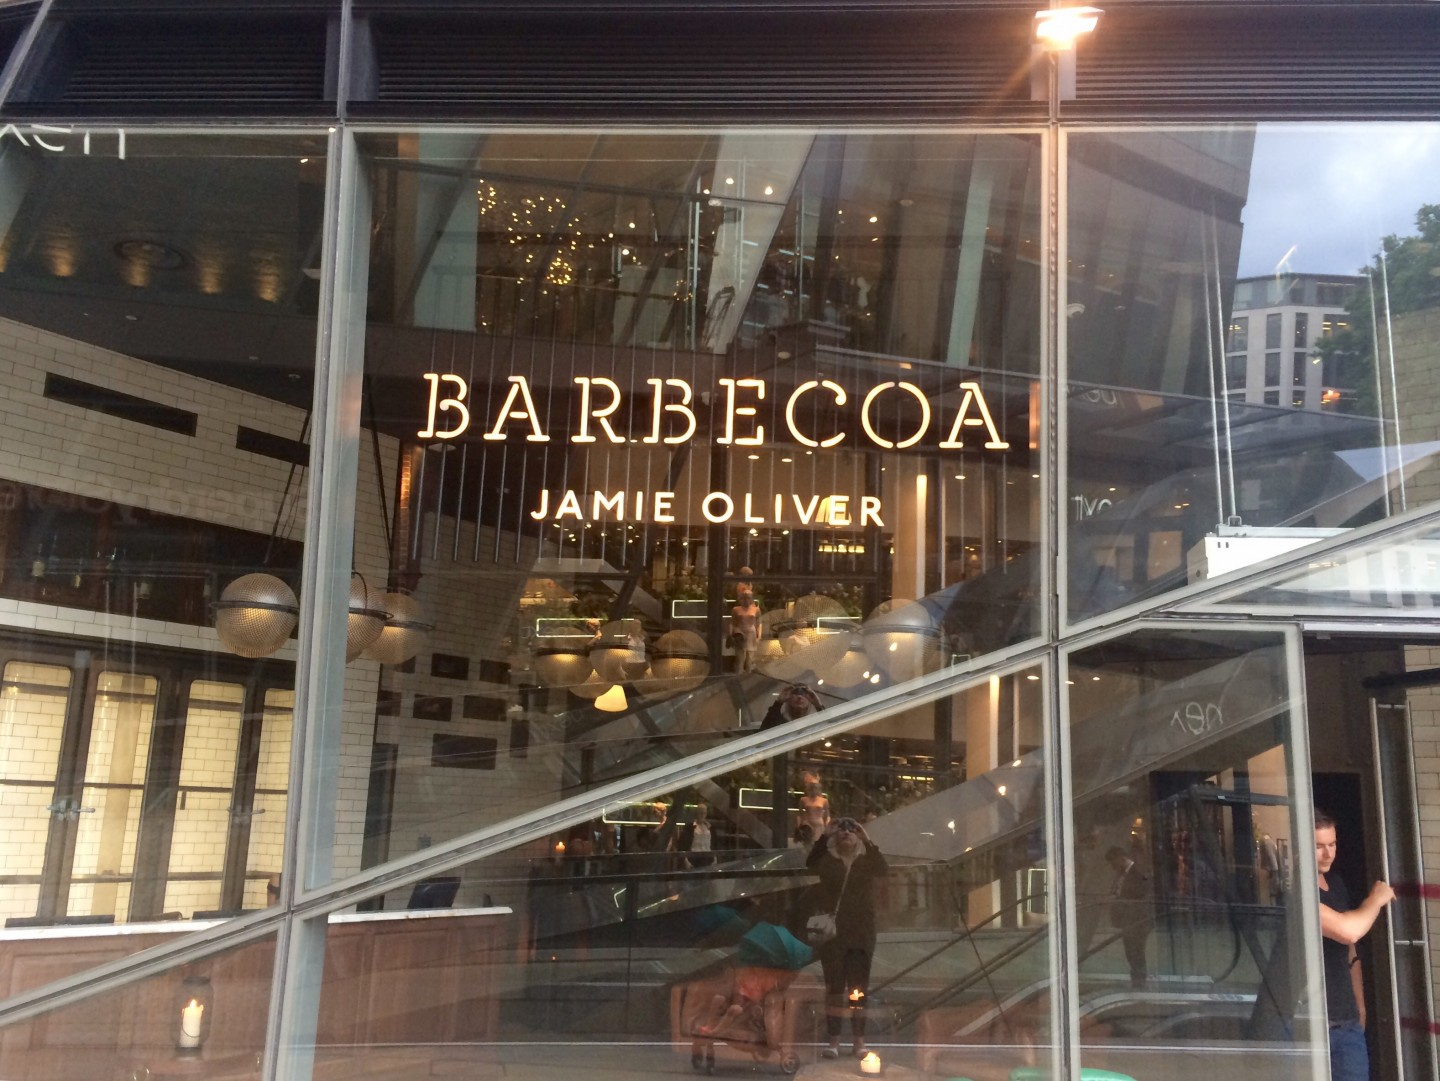 Jamie Oliver's Barbecoa Restaurant in St. Pauls | Review